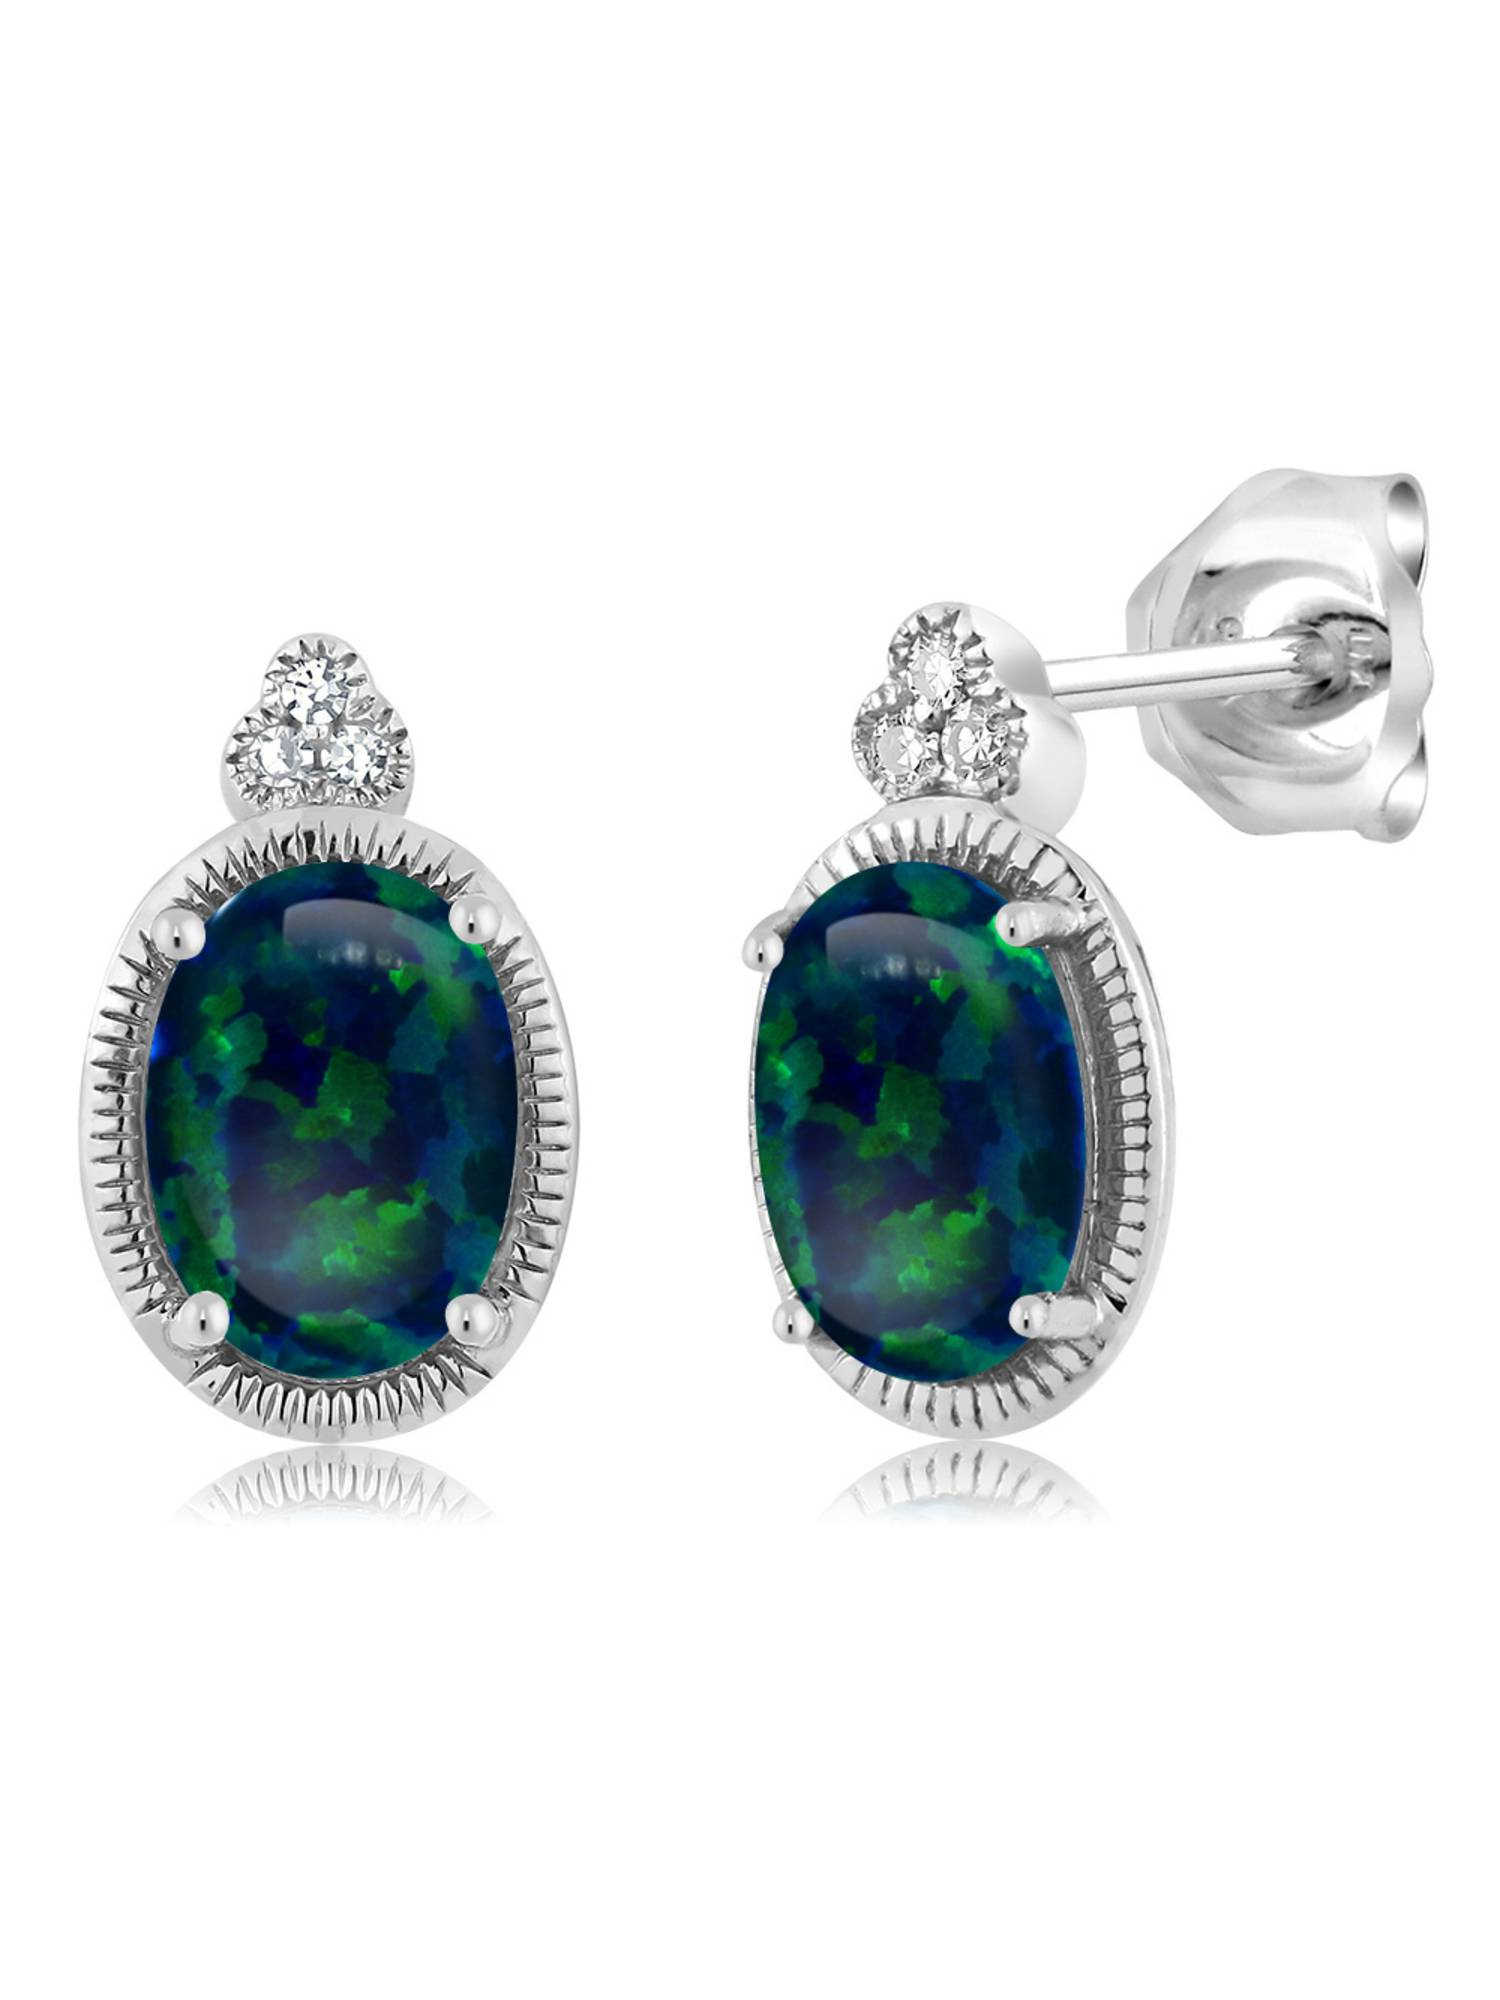 1.00 Ct Cabochon 6x4mm Green Simulated Opal Diamond 10K White Gold Stud Earrings by